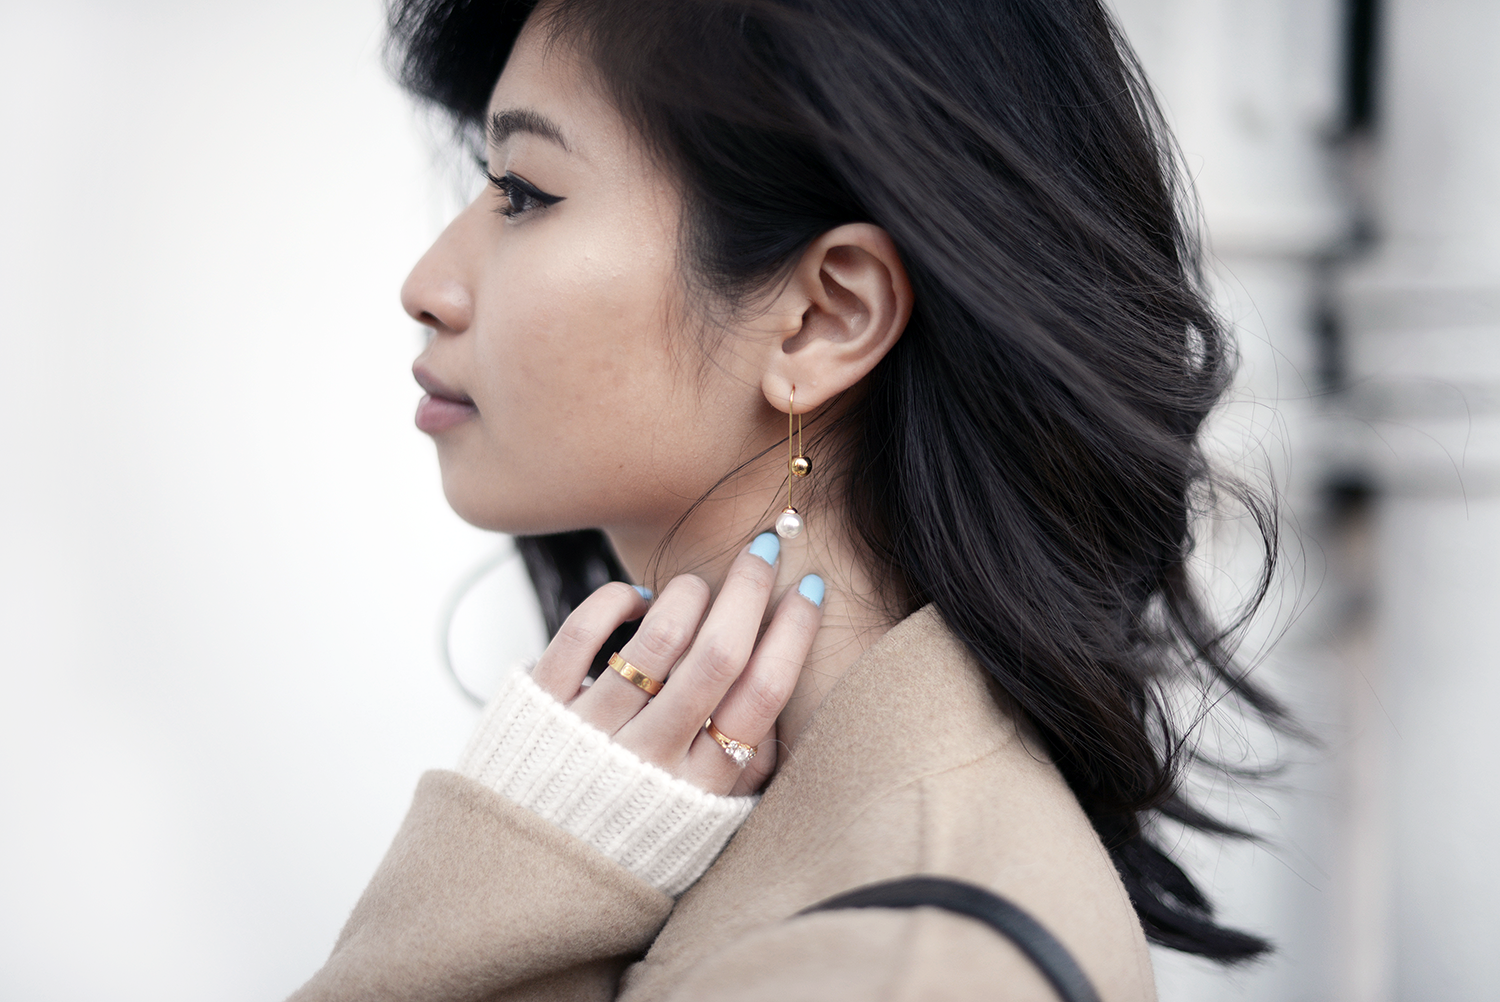 Pearl Earrings with Camel Coat and One Shoulder Sweater | FOREVERVANNY.com